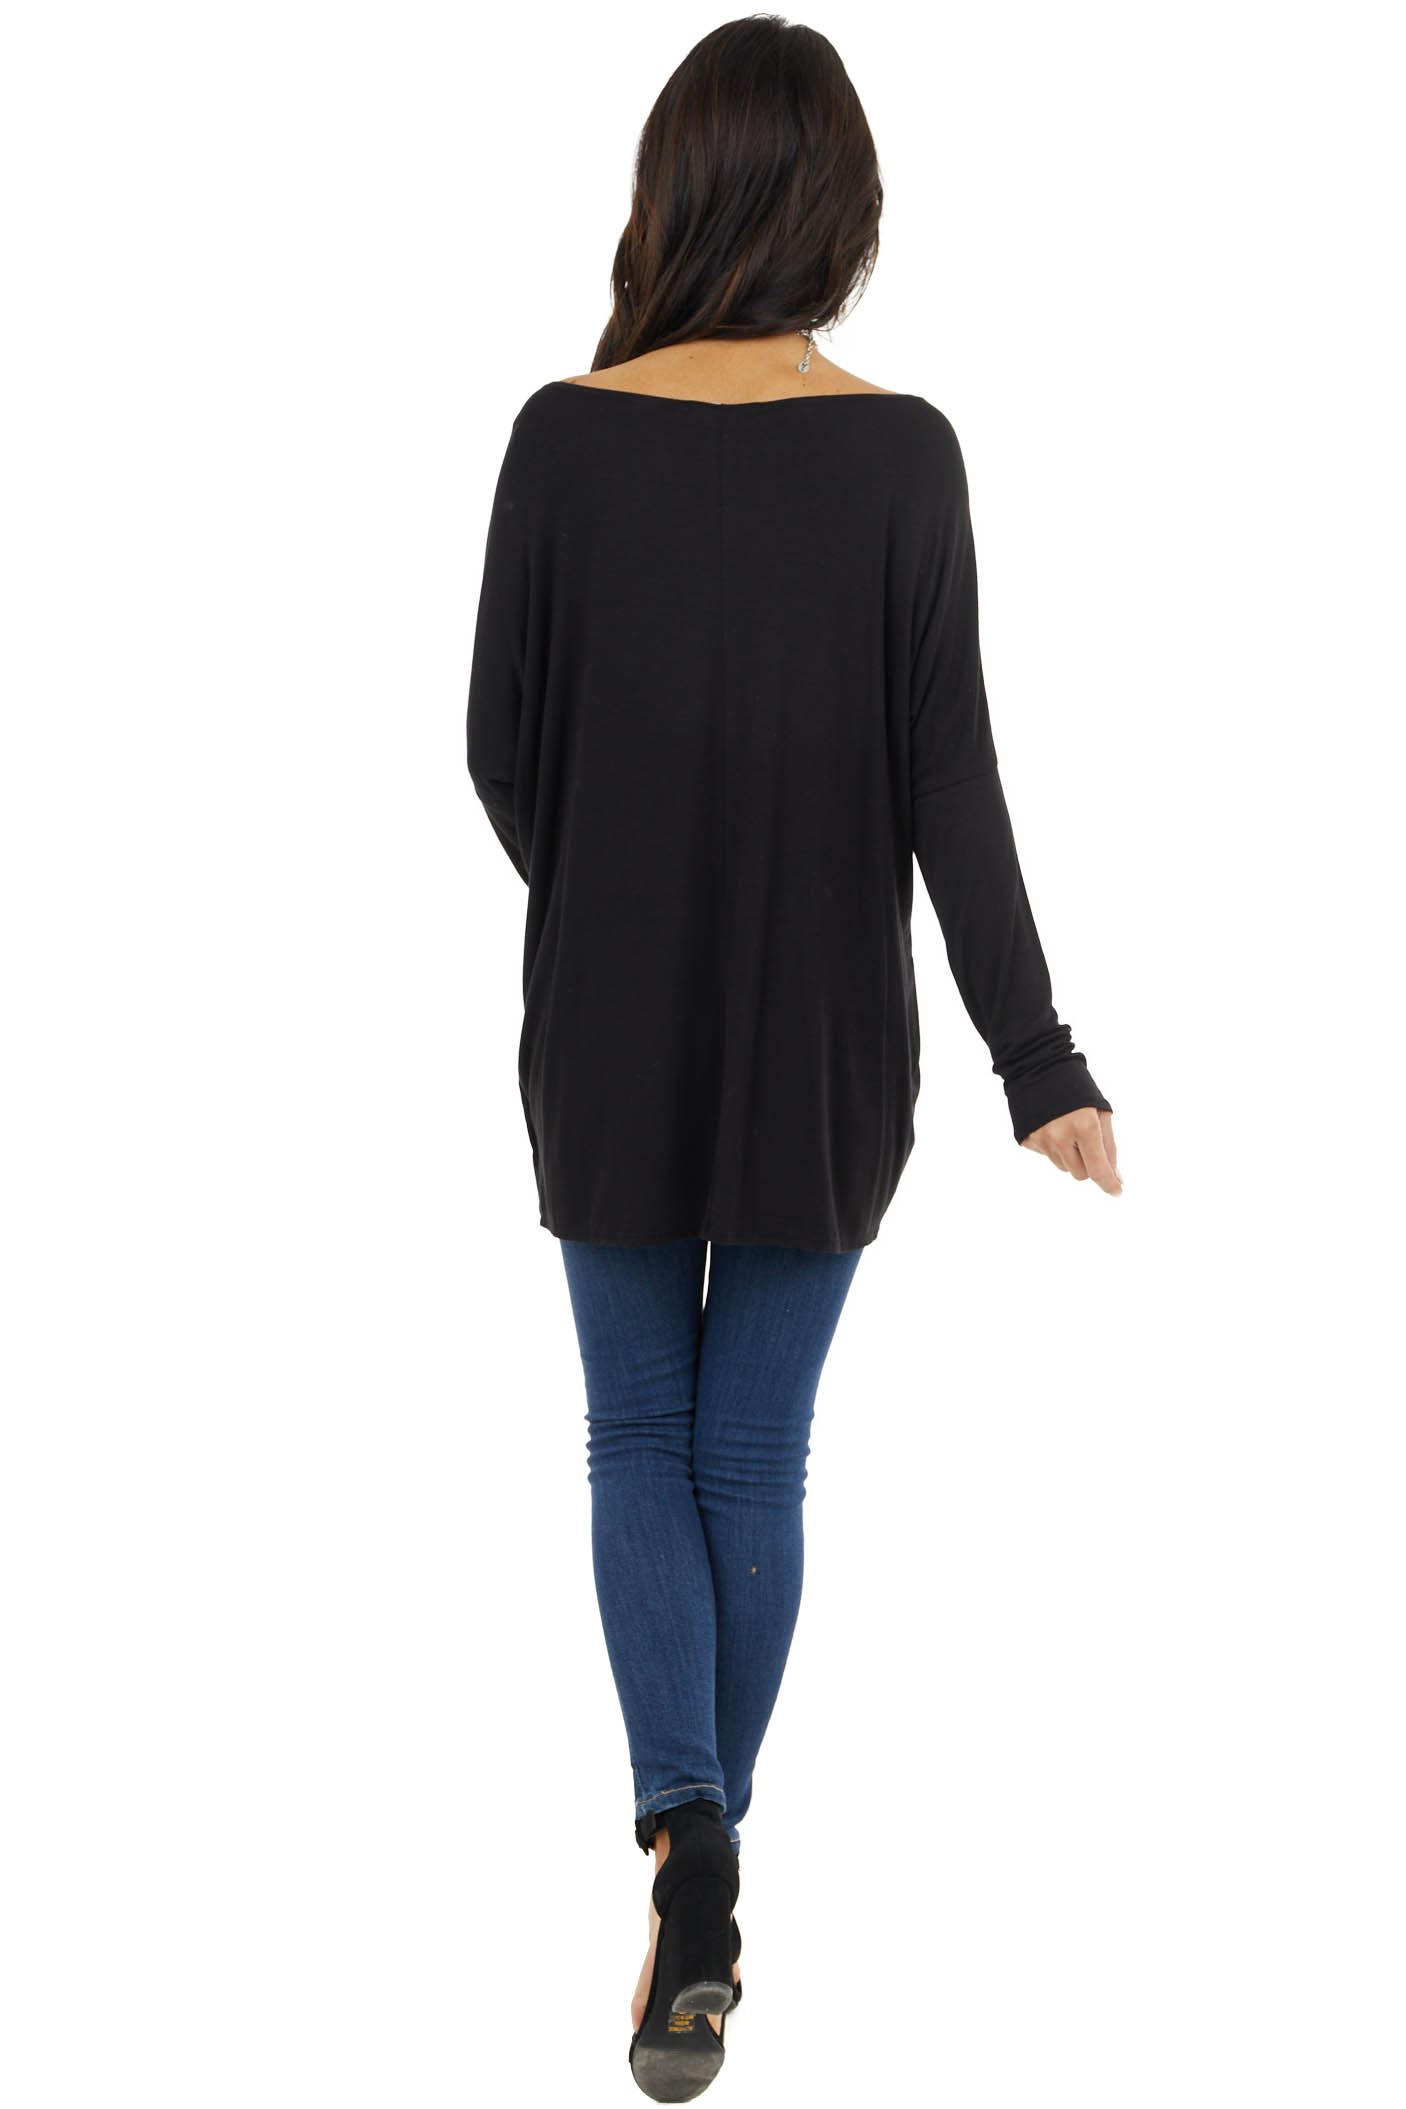 Black Long Sleeve Knit Top with Boat Style Neckline